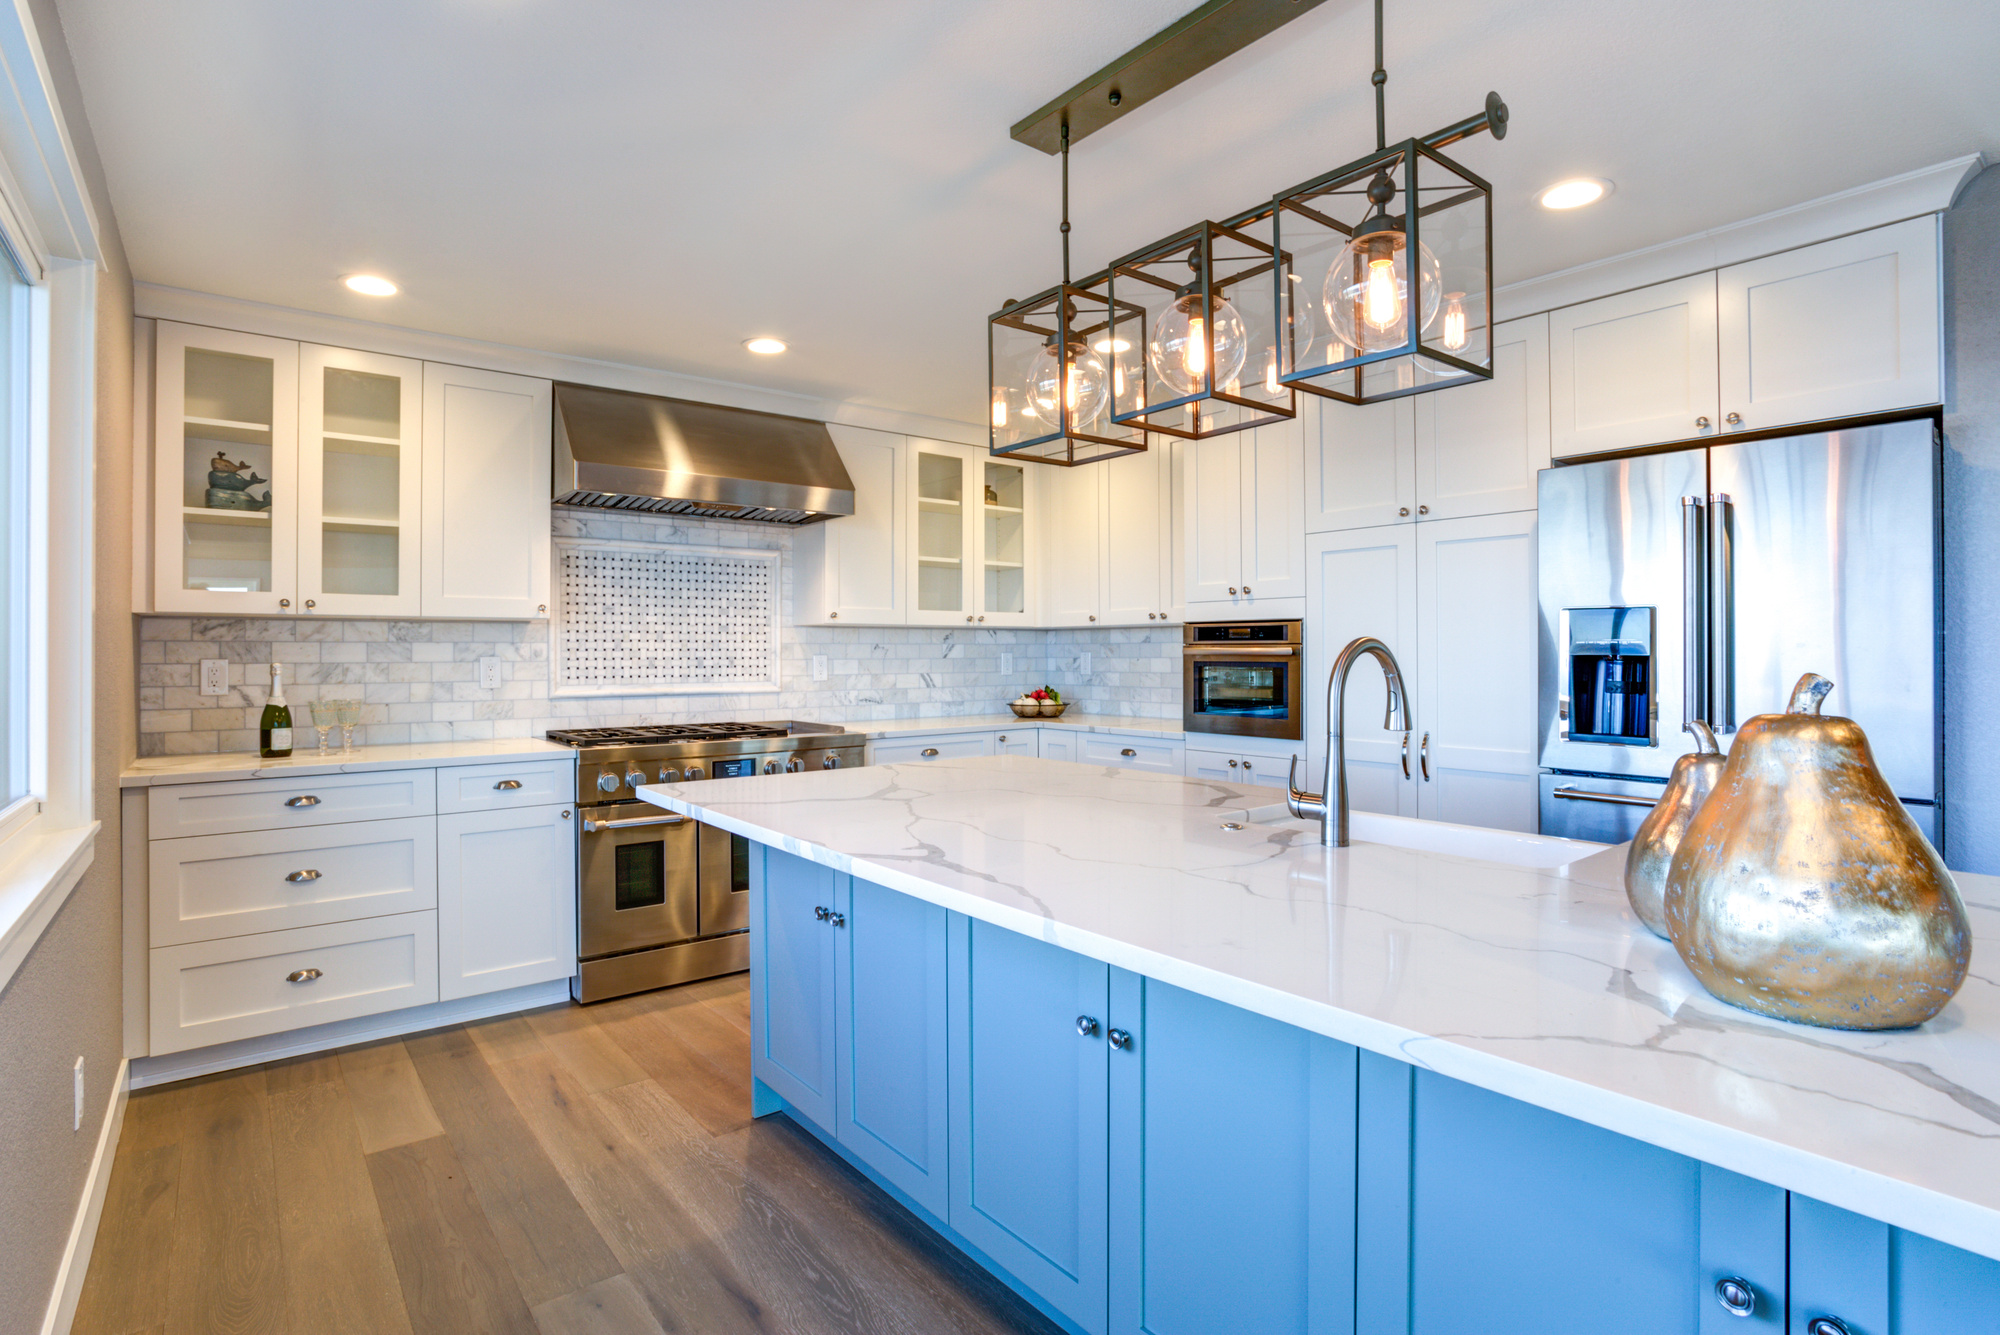 5 kitchen lighting ideas for your home petersen electric